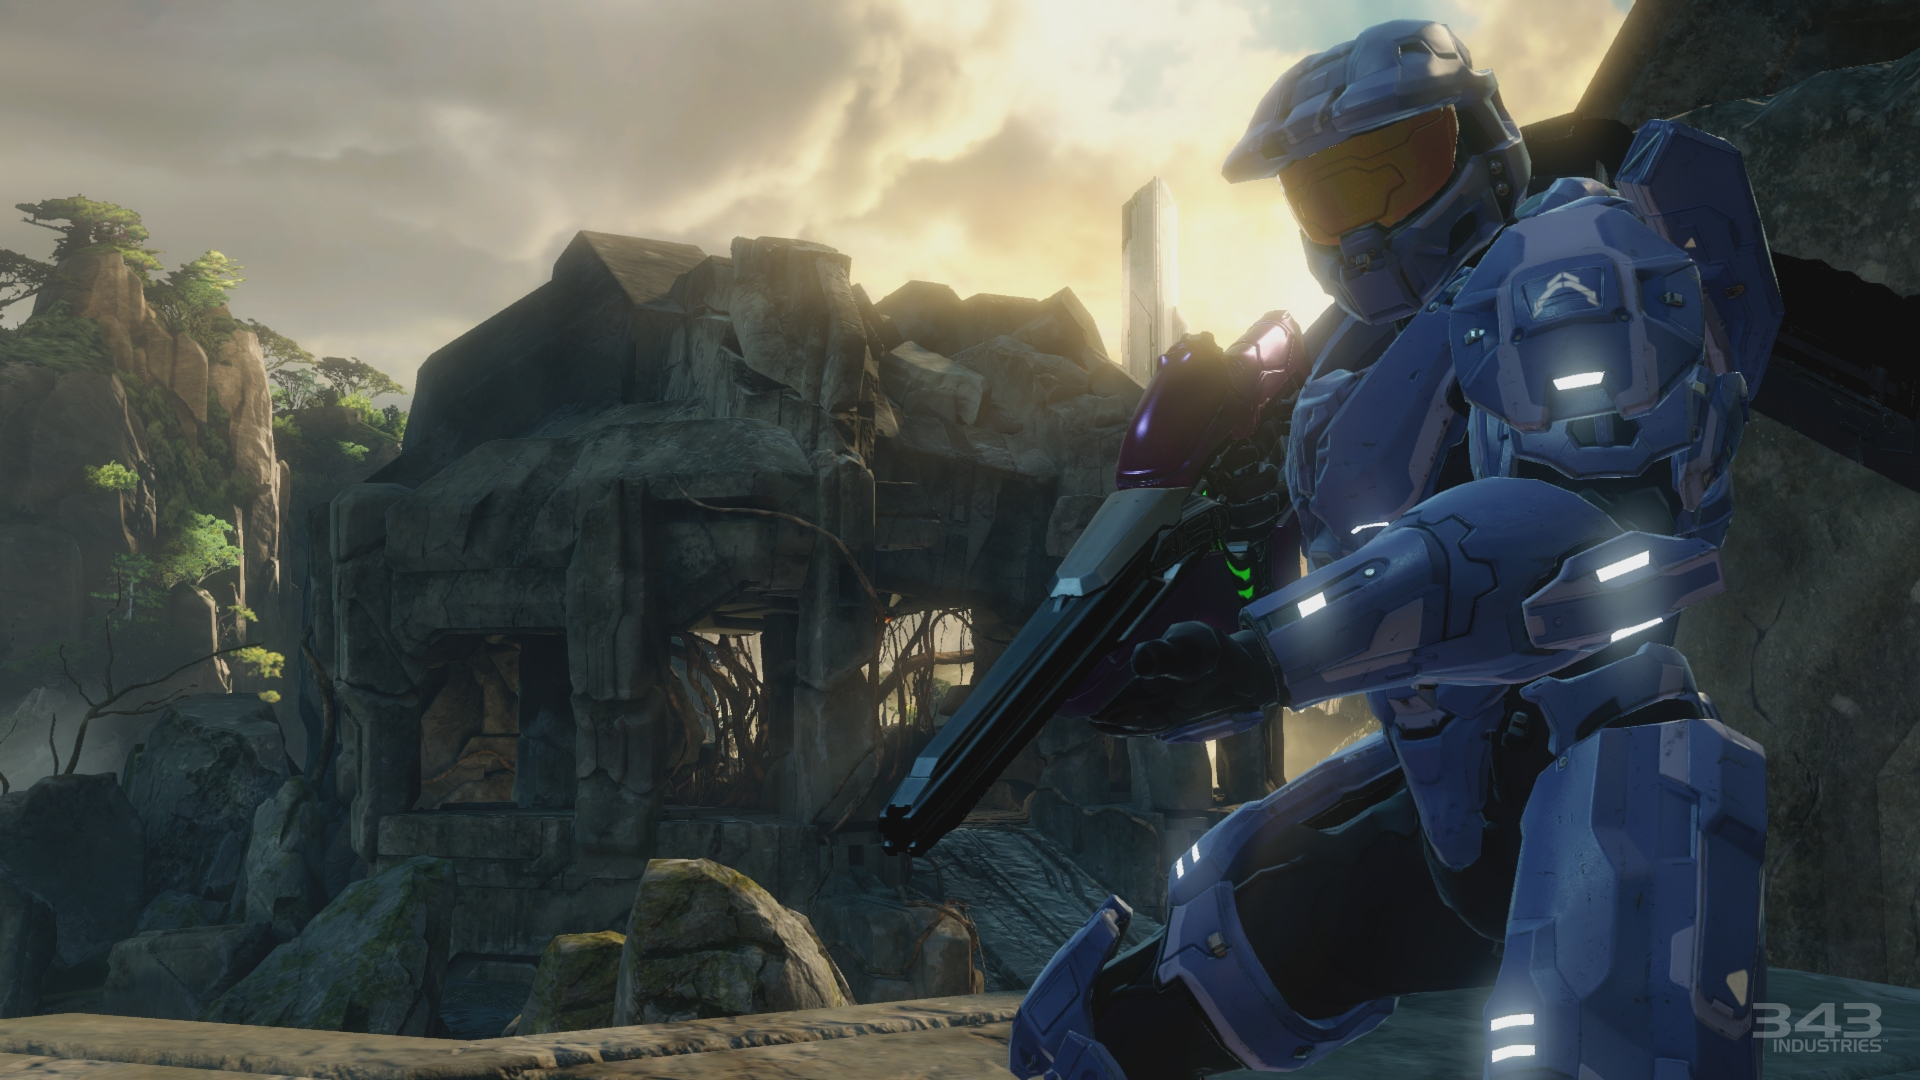 Скриншот из игры Halo: The Master Chief Collection под номером 16